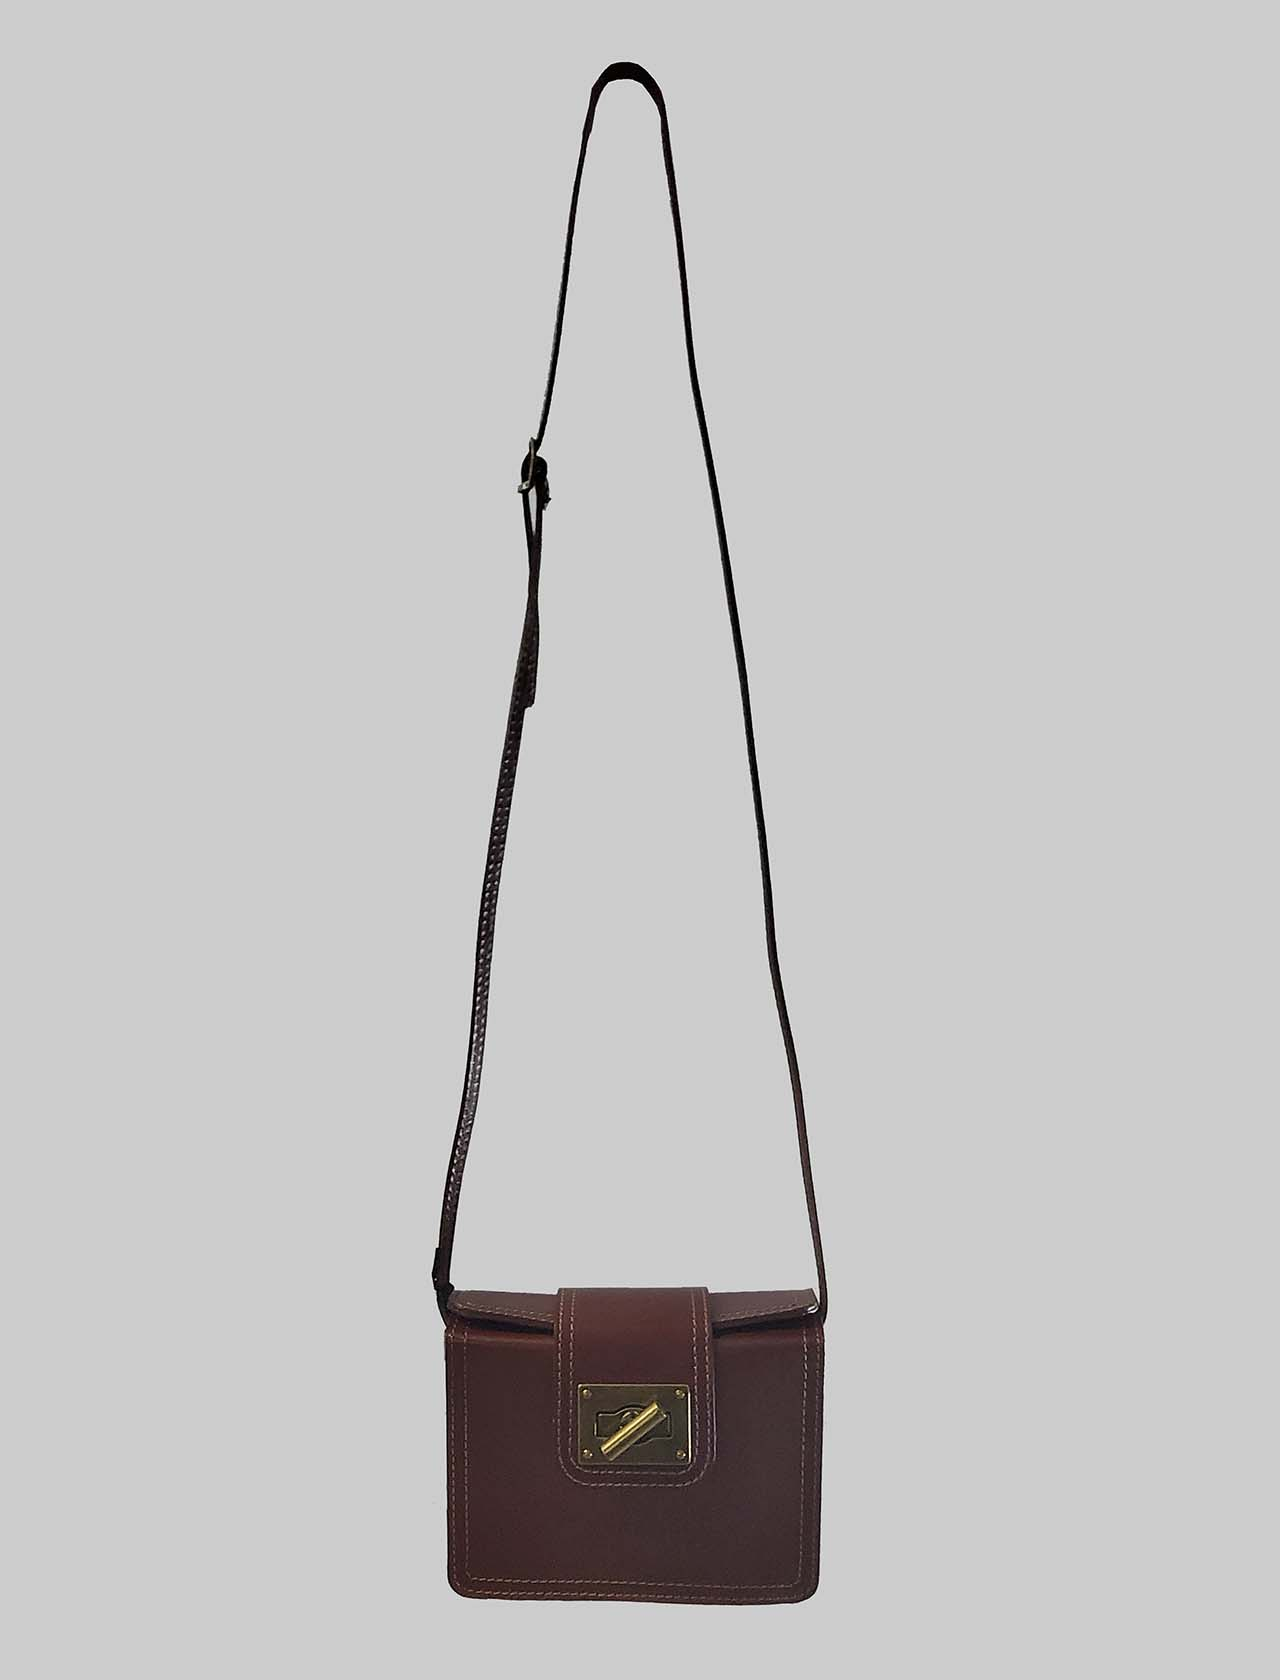 Women's Bags Small Leather Clutch Bag with Adjustable Leather Rigid Shoulder Strap Spatarella | Bags and backpacks | PE0204014